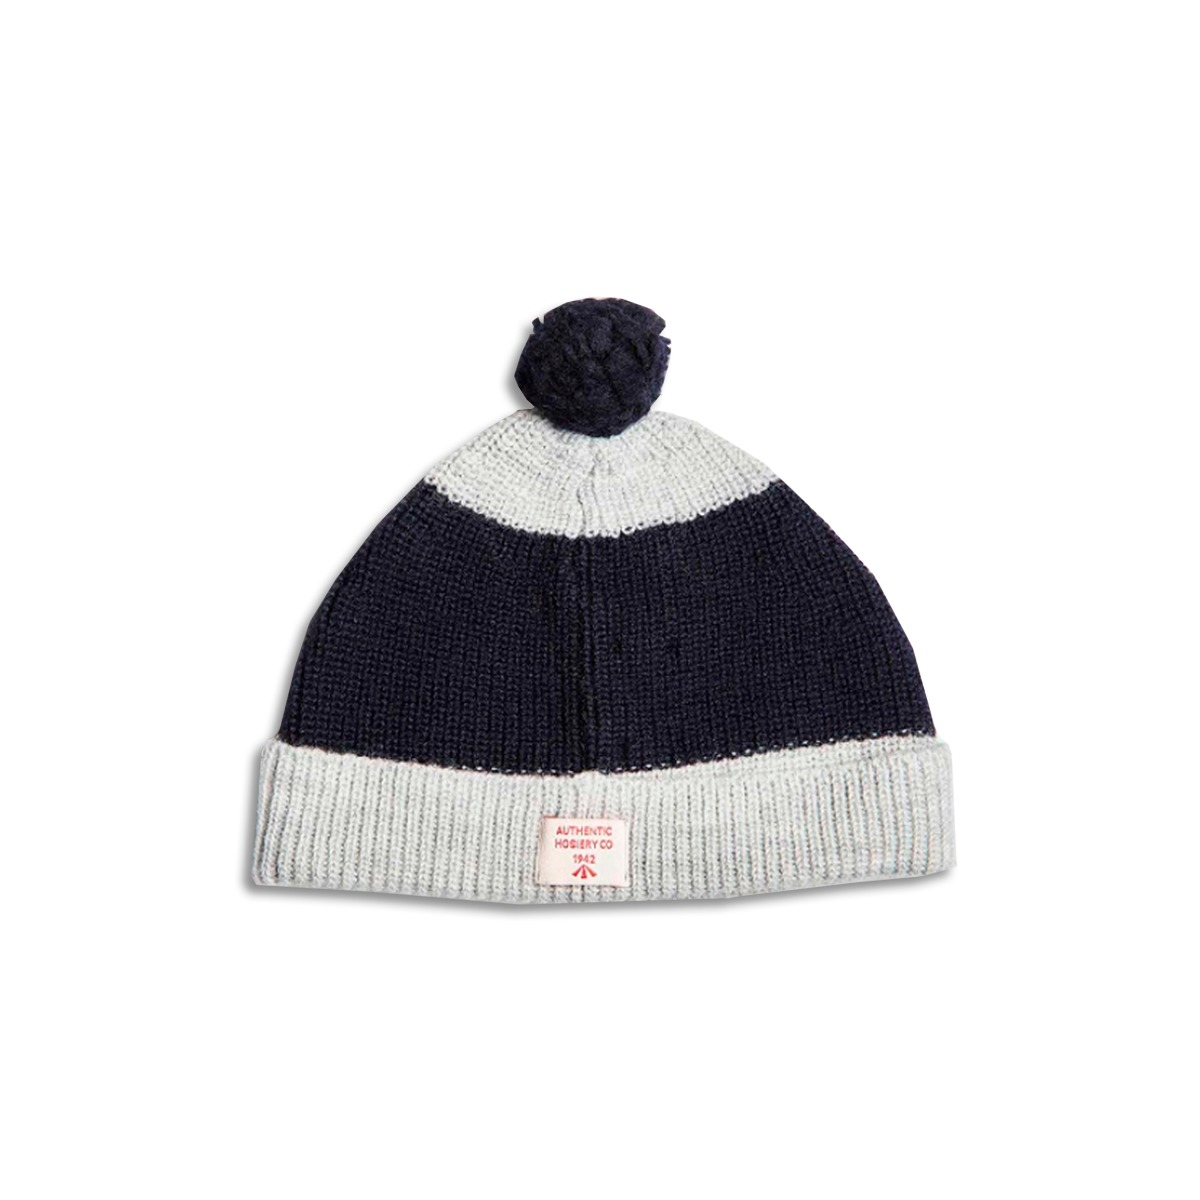 [NIGEL CABOURN] STRIPED POM POM BEANIE 'NAVY & GREY'